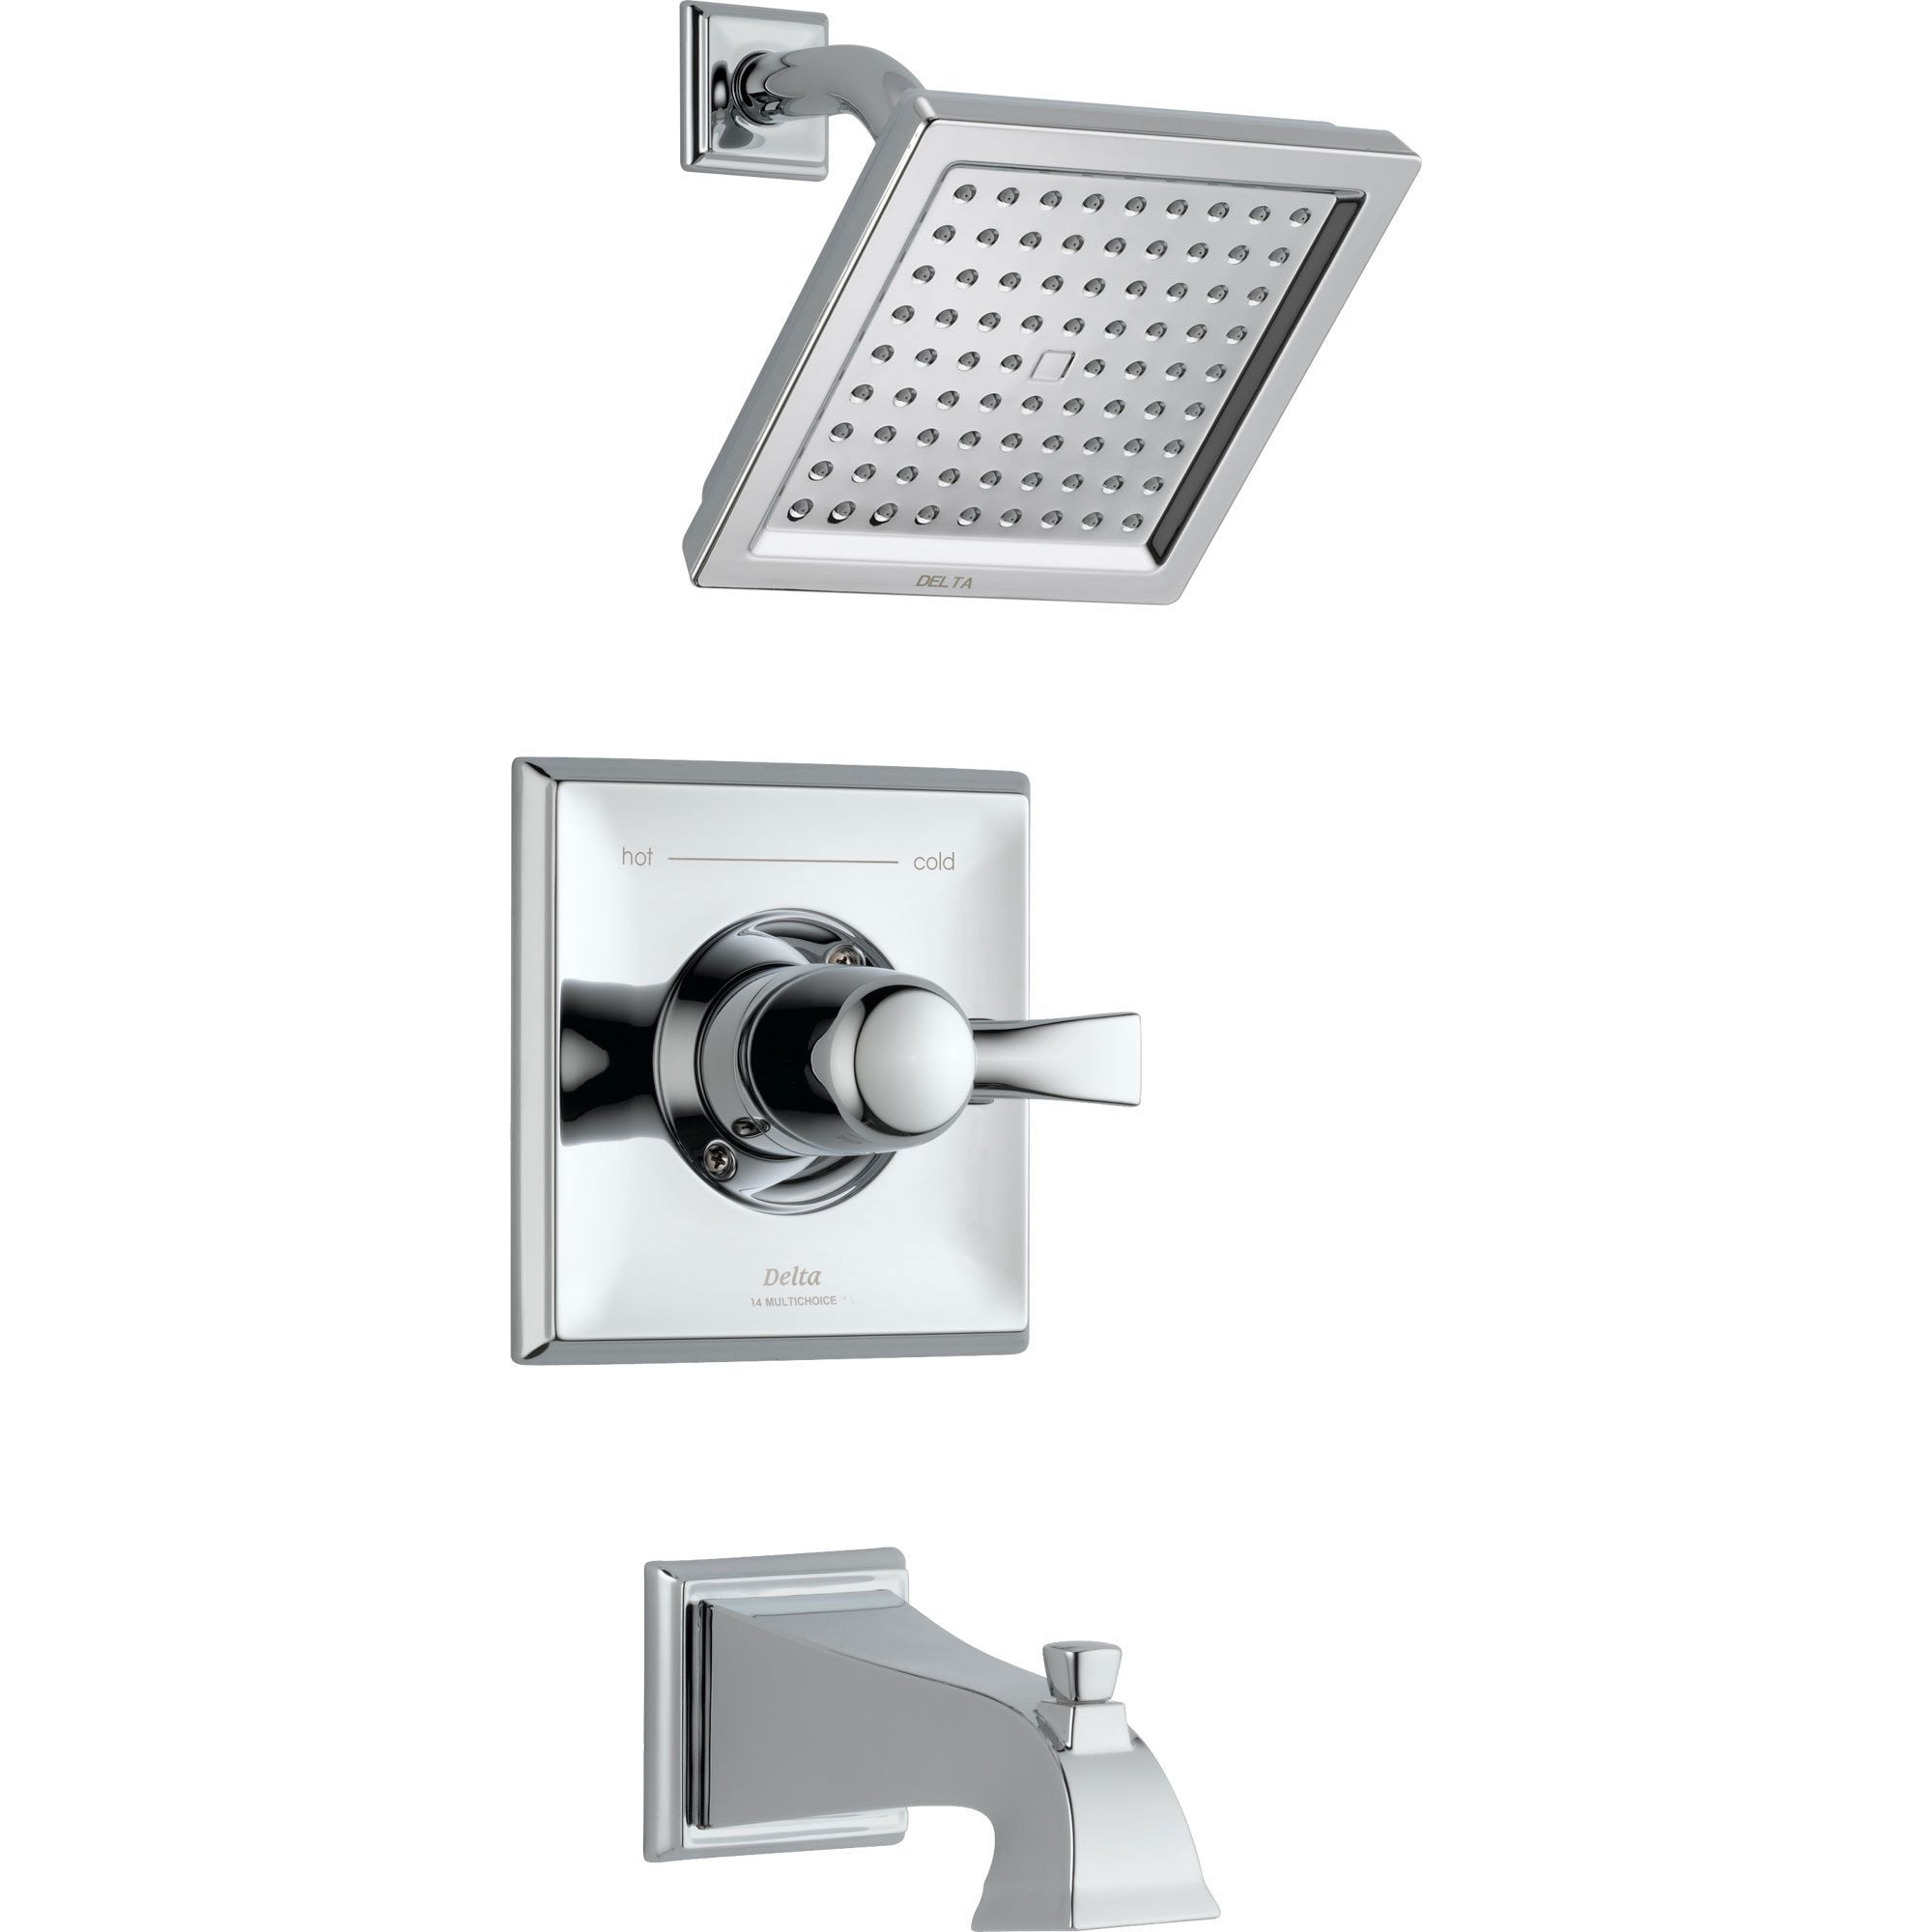 Delta Dryden Modern Square Chrome Tub and Shower Faucet Includes Valve D246V